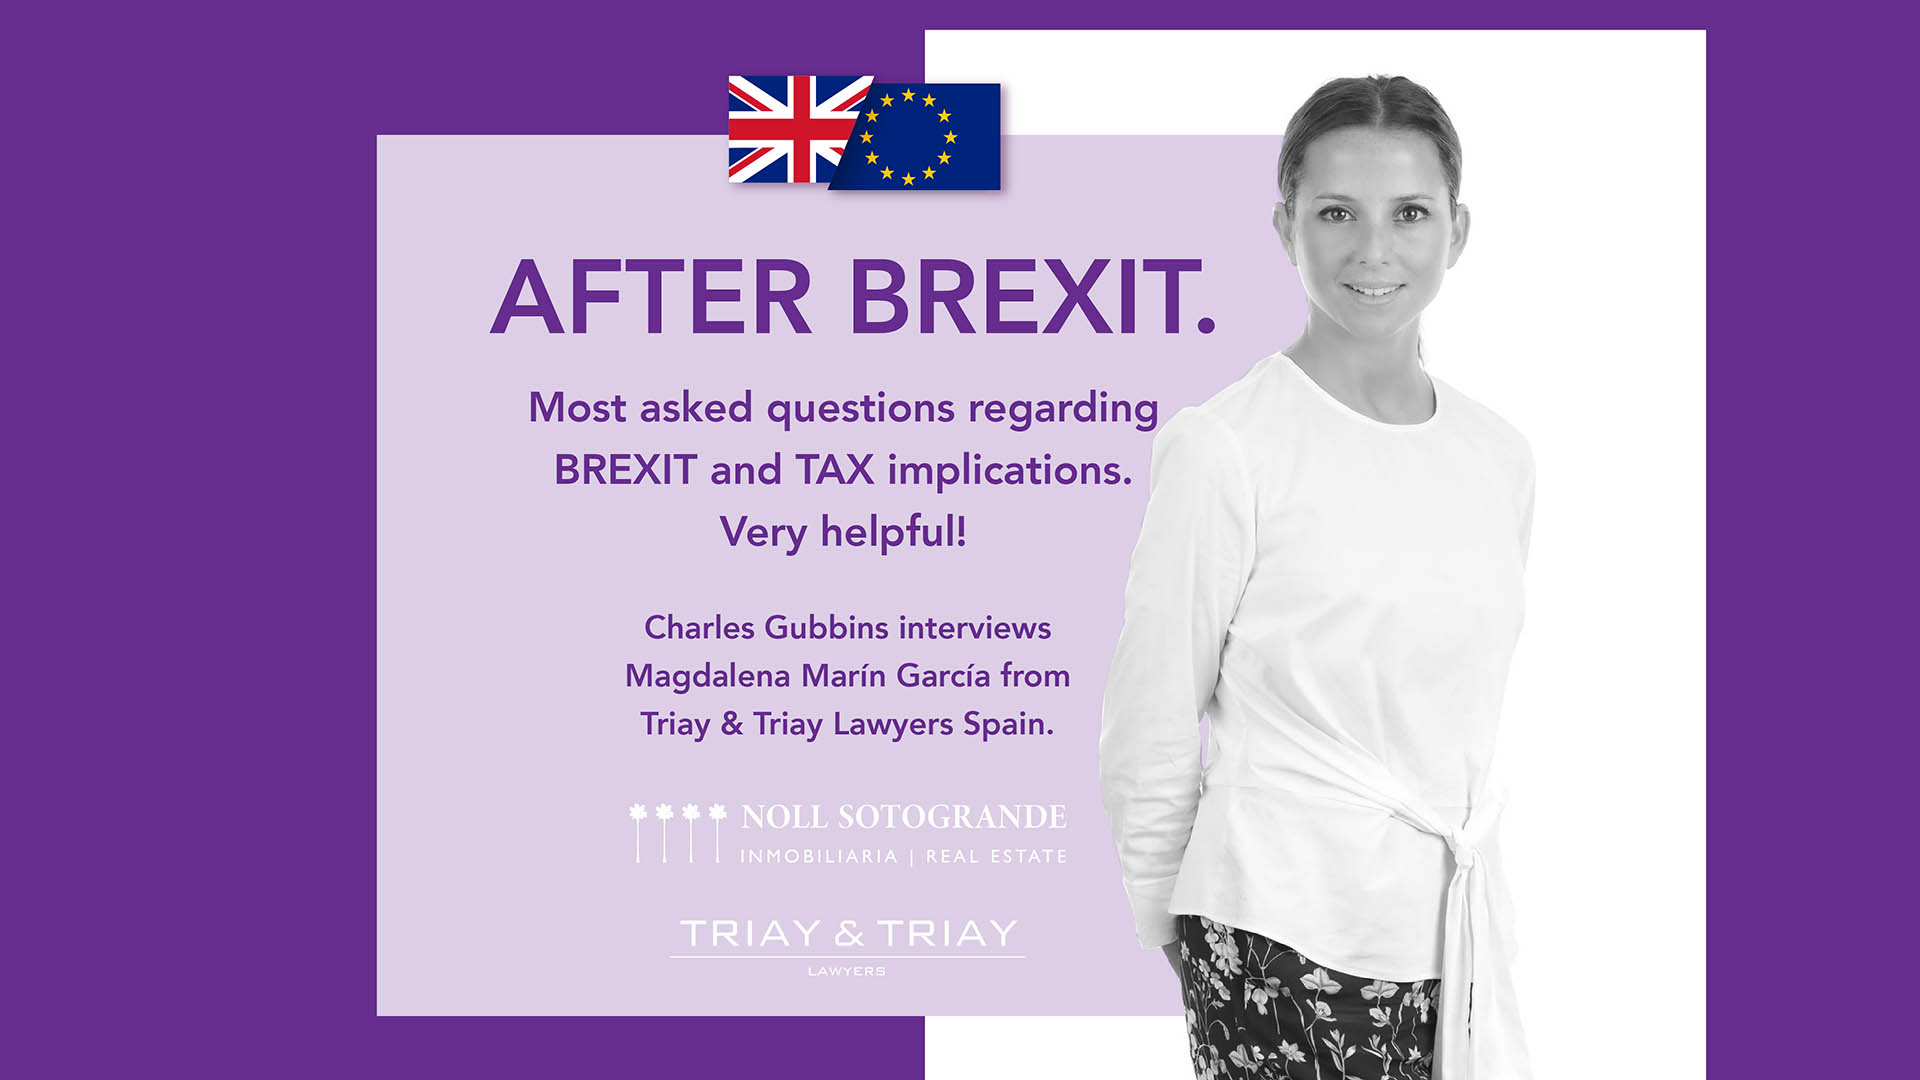 Most asked questions regarding BREXIT and TAX implications, very helpful! Questions and Answers in regard Great Britain citizens post Brexit.